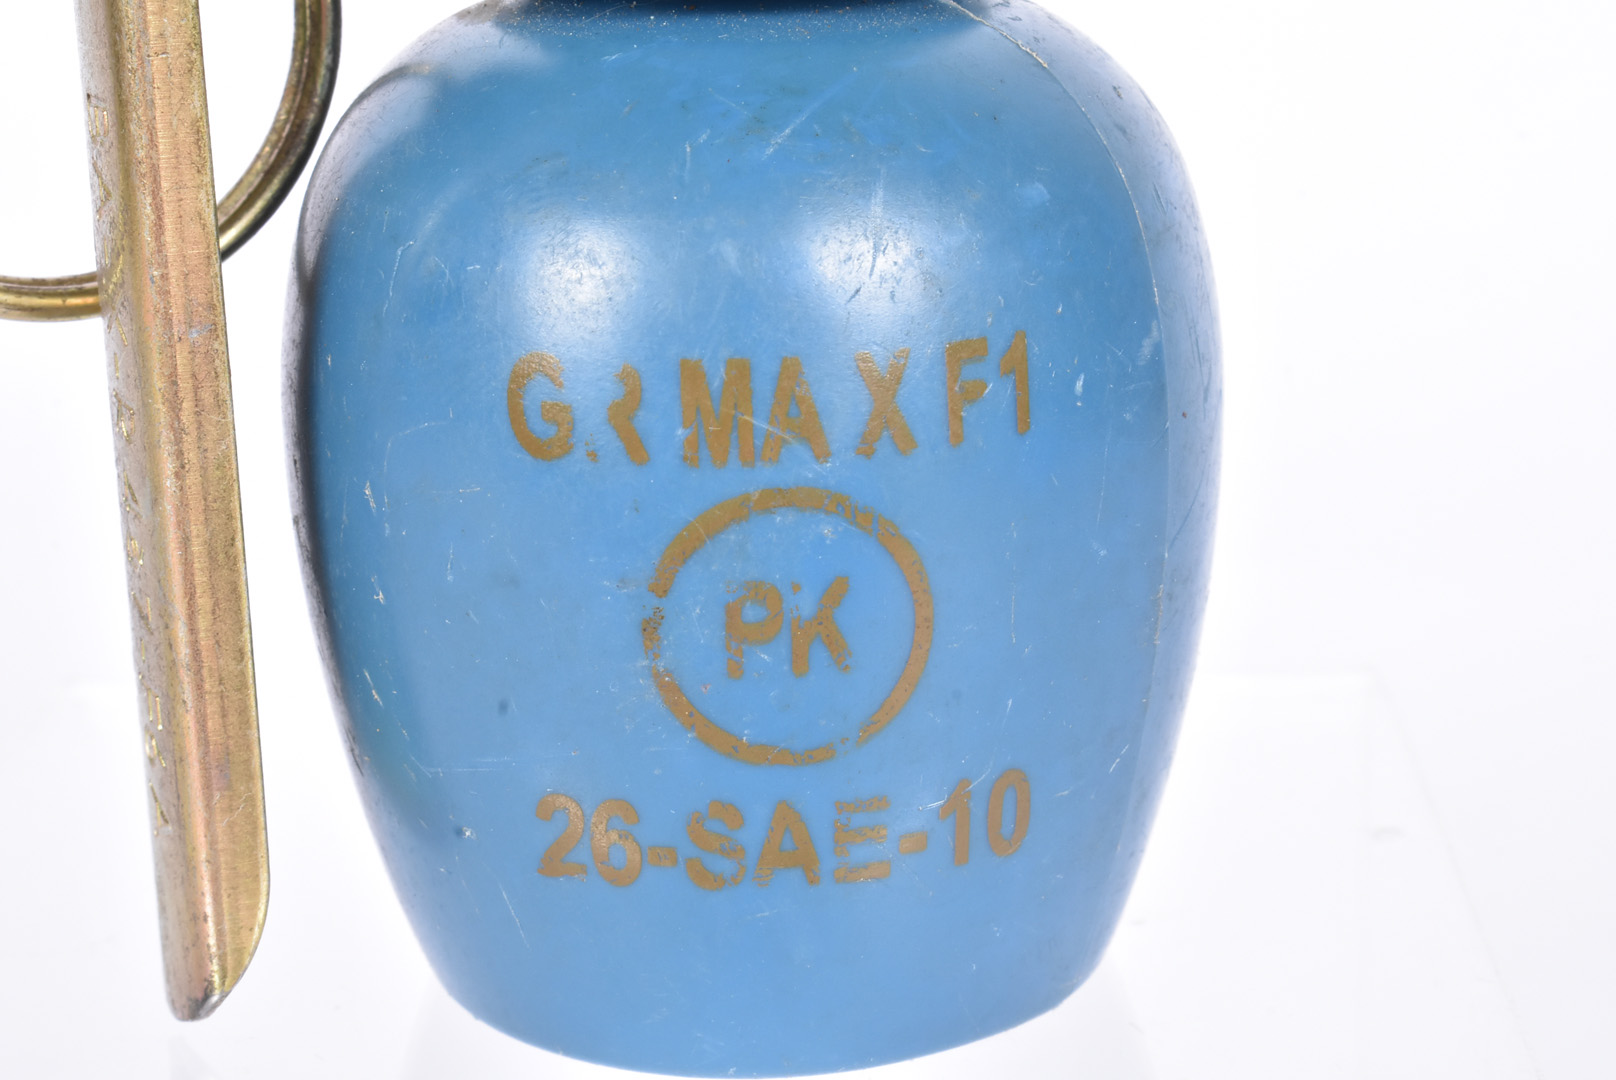 An inert French M51 practice grenade, having blue body with stamp, complete with spoon and pin, also - Image 2 of 4